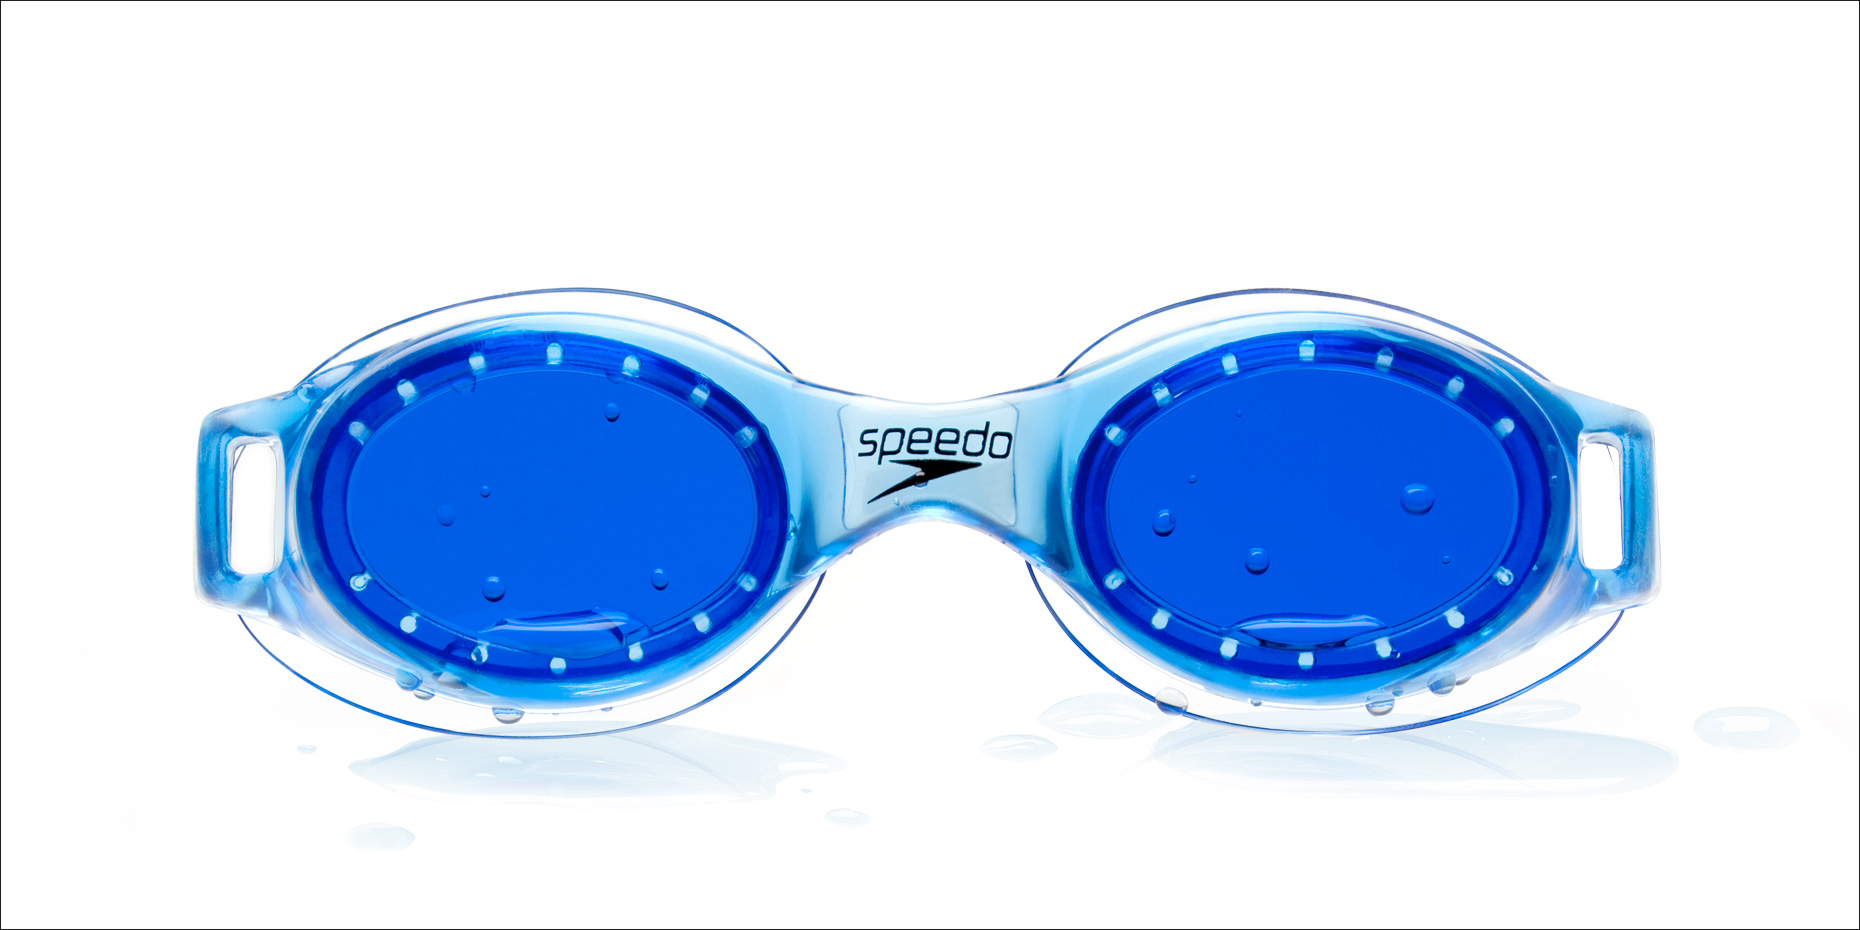 Blue Speedo goggles.